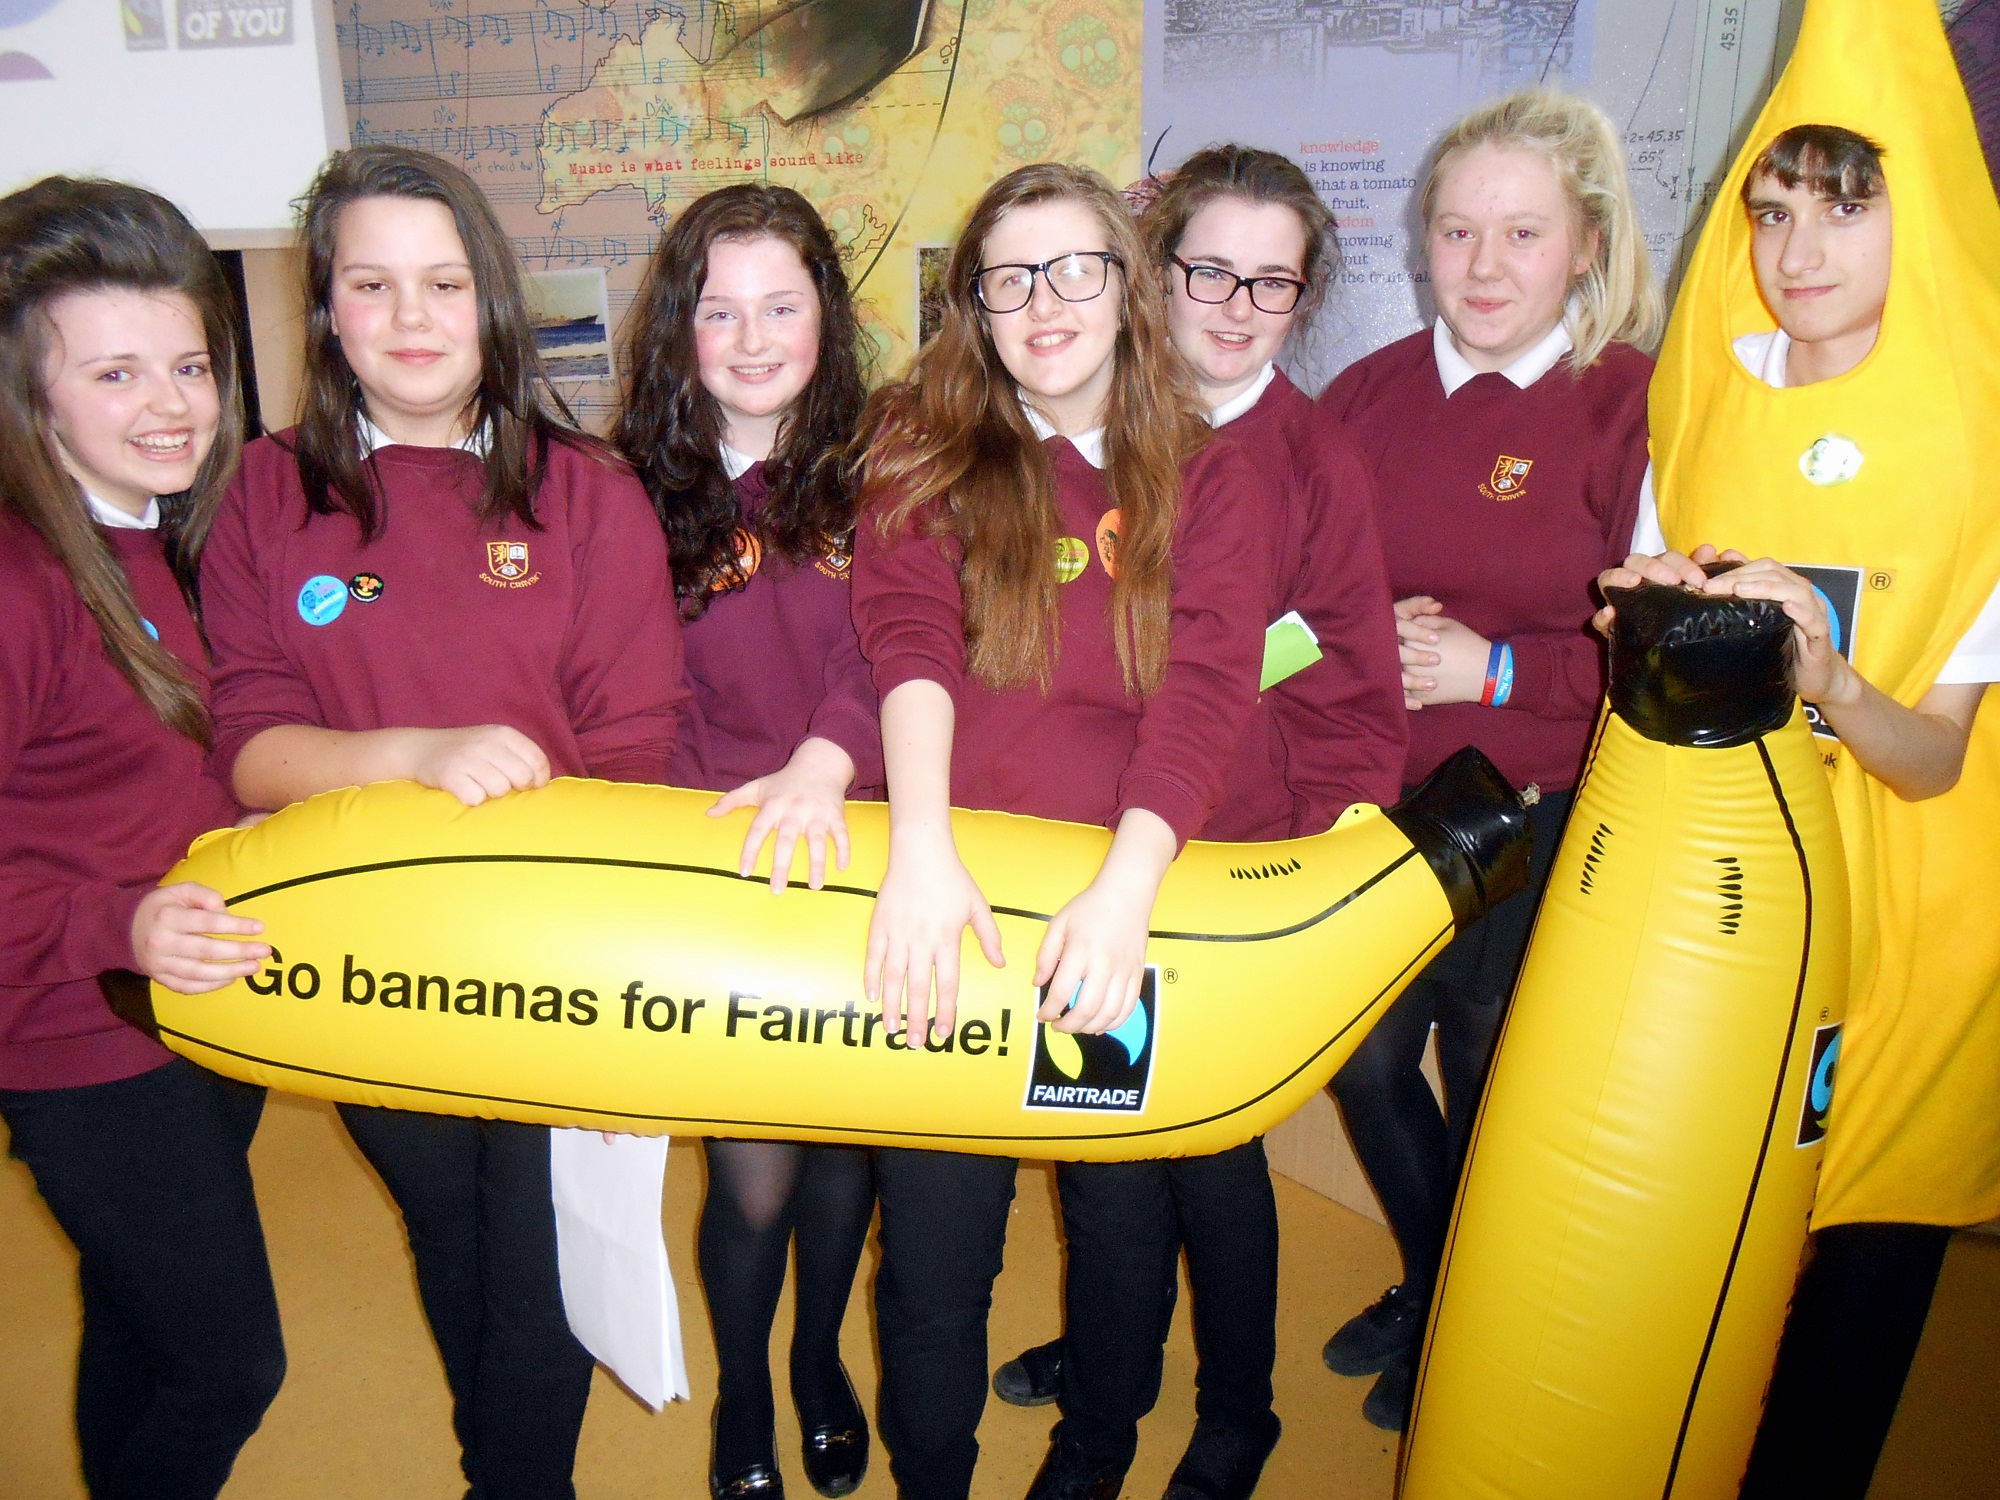 Keighley district pupils learn all about Fair Trade